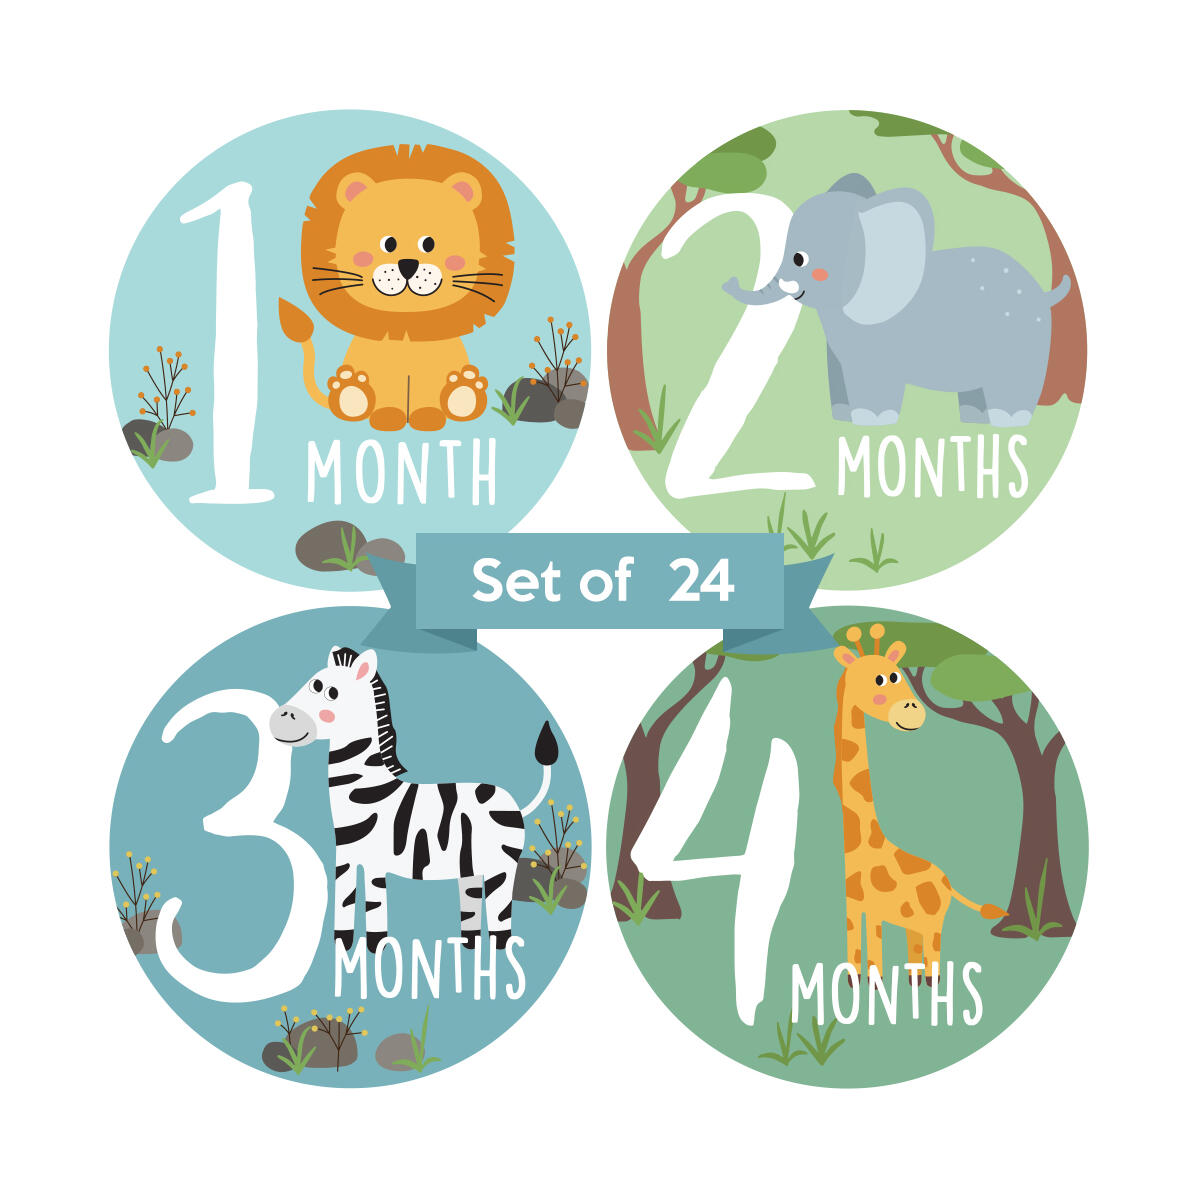 Adorable Animal 4 in Baby Monthly Milestone Stickers for Boys or Girls. Set of 24 Gender Neutral Month Decals. Unisex Jungle Themed Newborn Picture Props. First Year Photo Aids for Babies.